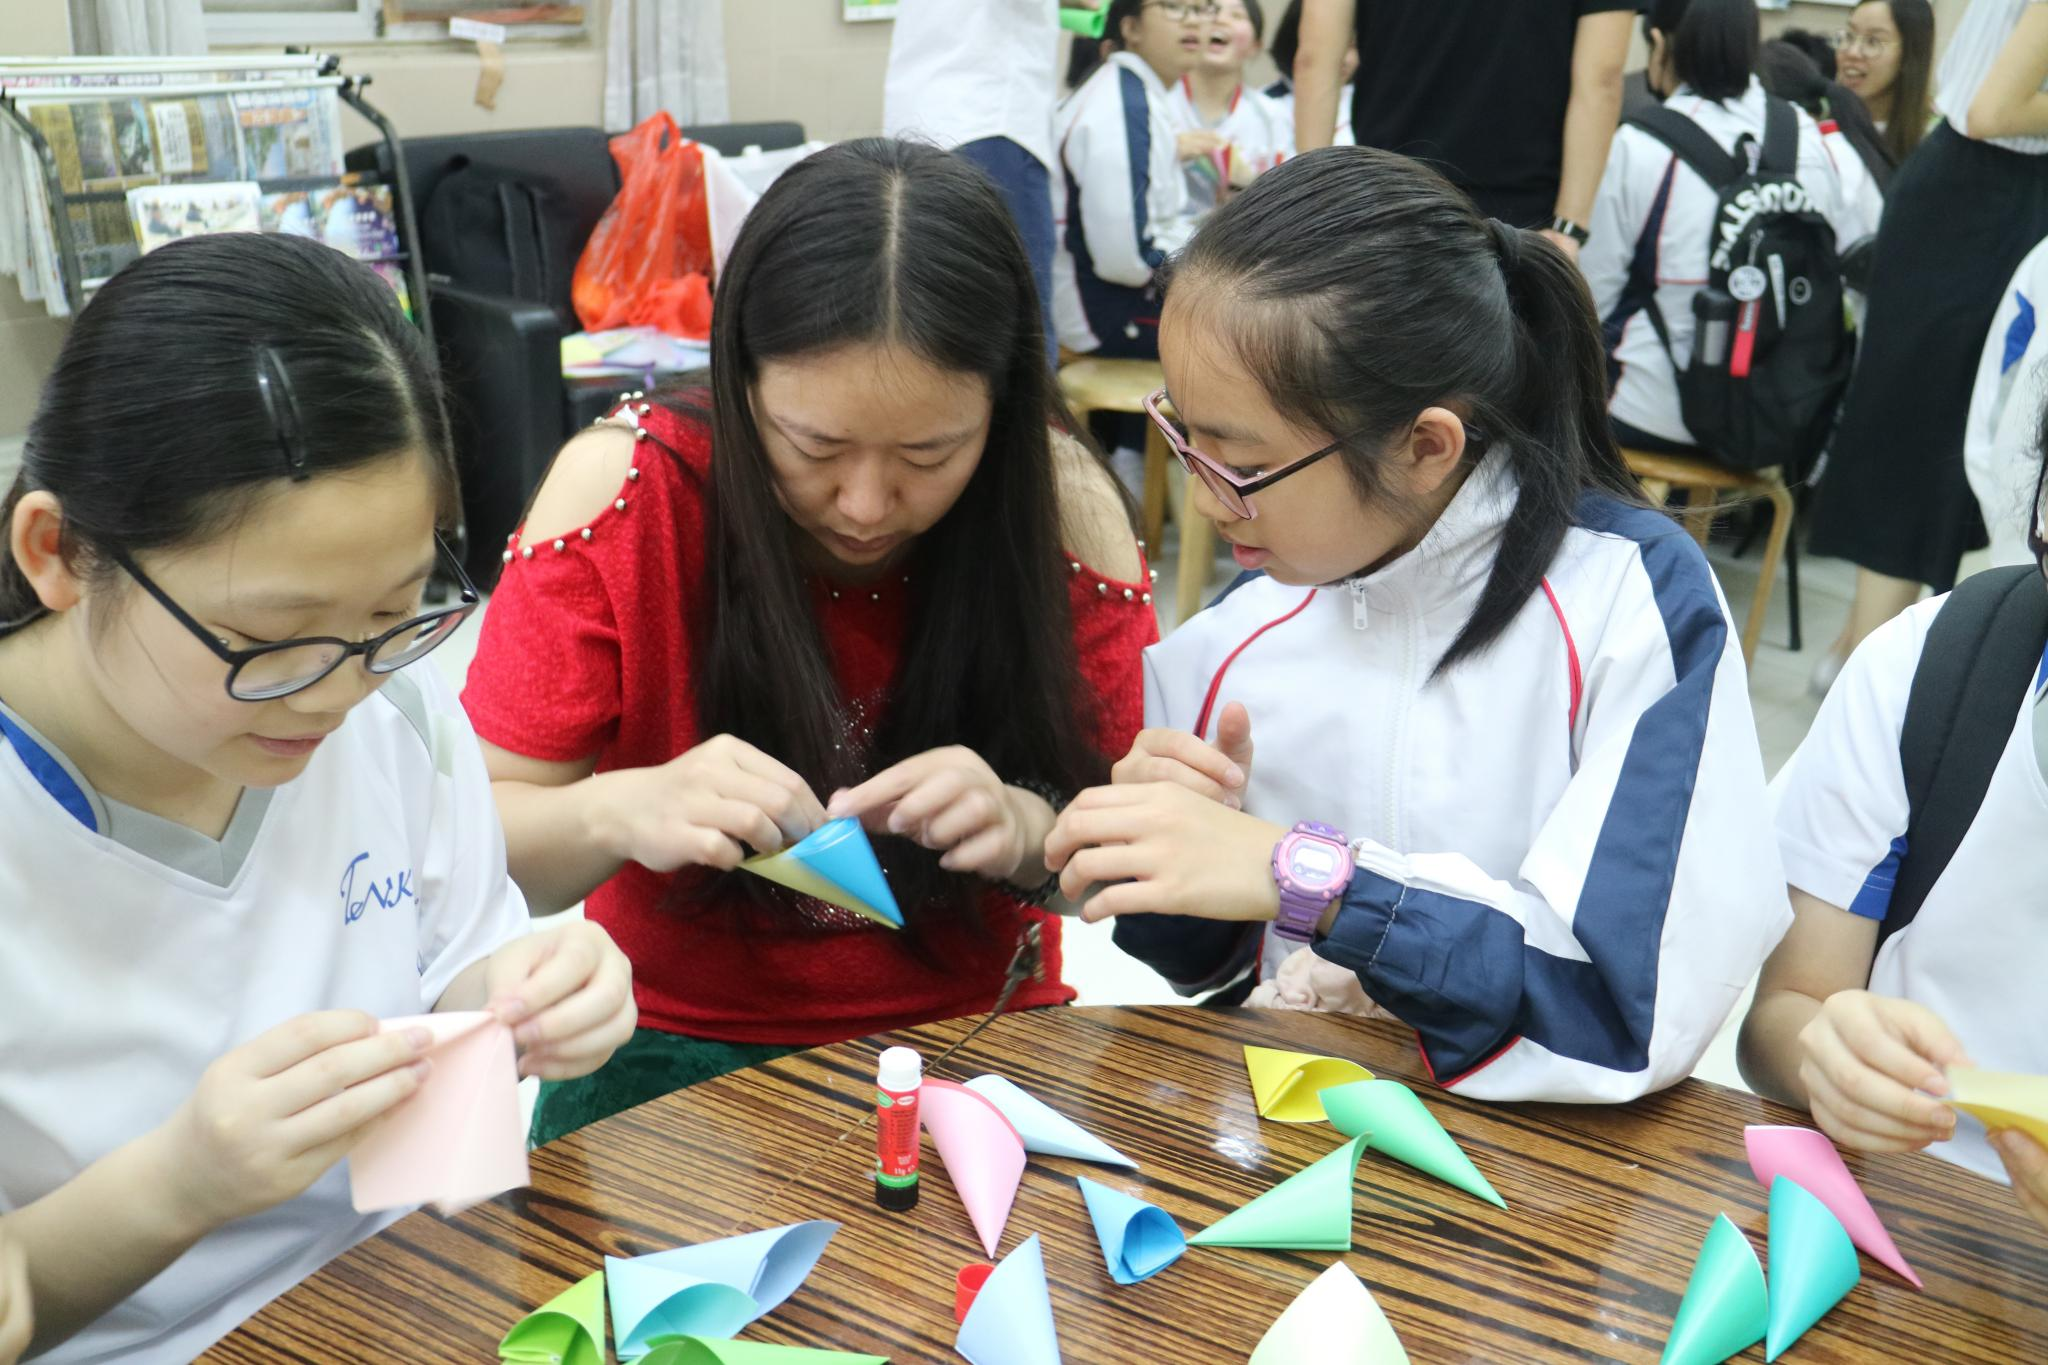 Our students were making paper handicraft flowers with the service users.